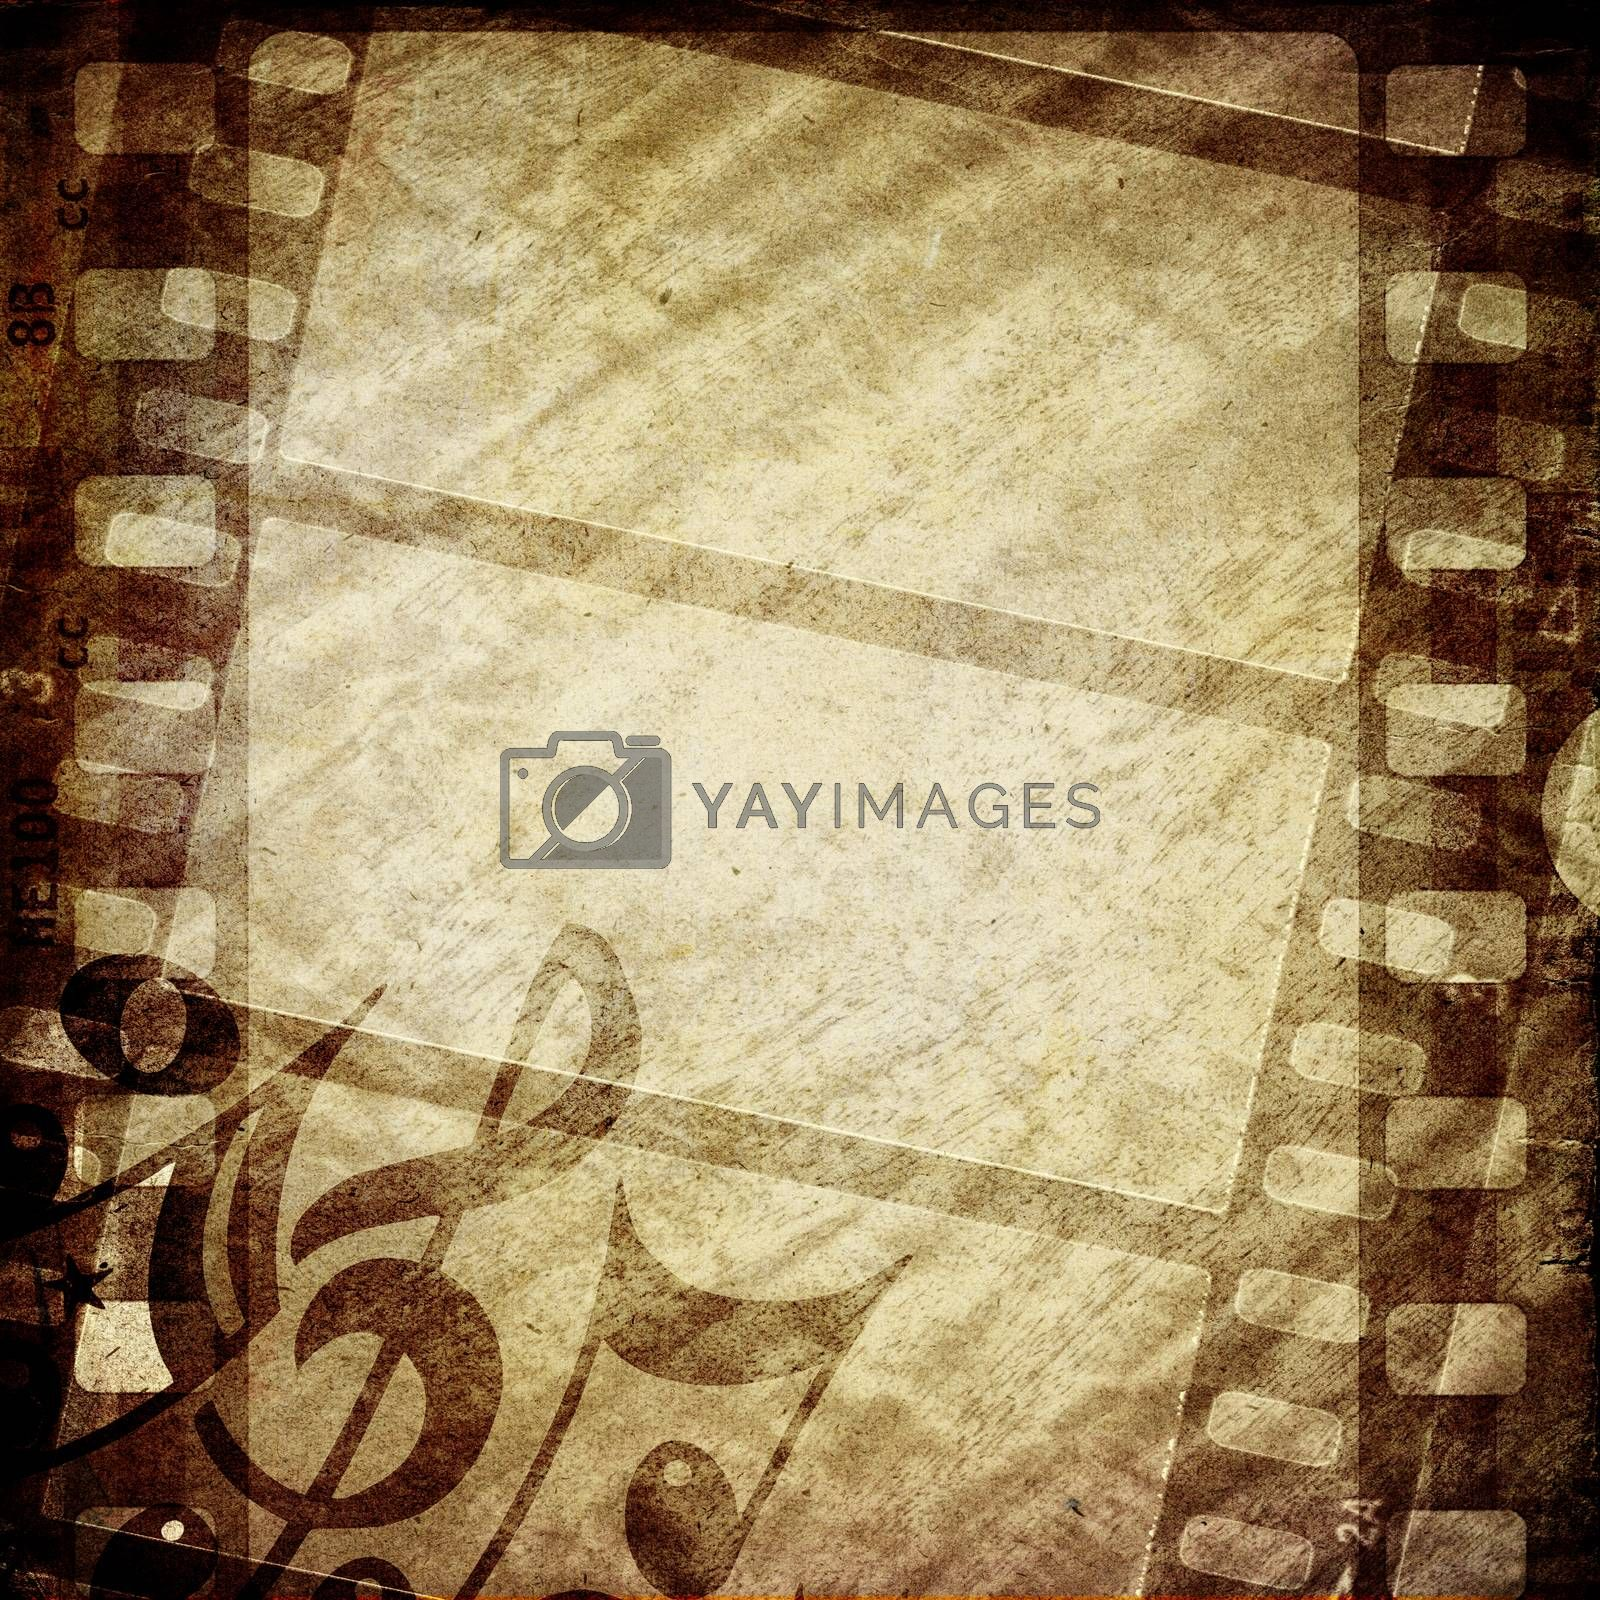 Highly detailed grunge textured film frame